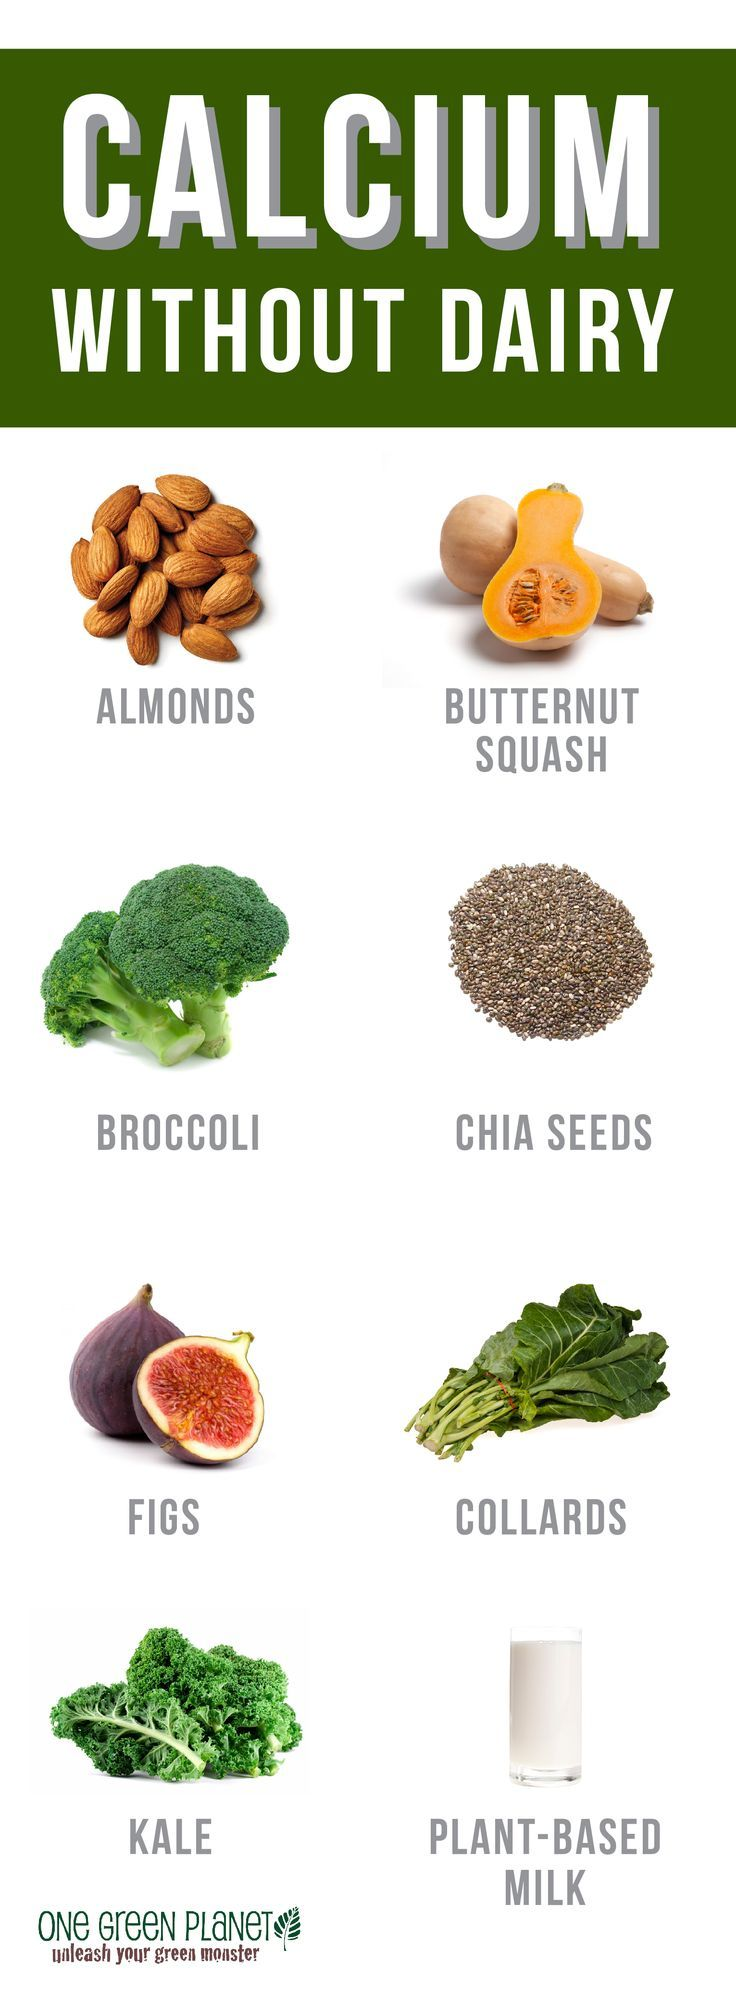 Natural plant based diet: how to get plenty of calcium without dairy. Go Vegan!